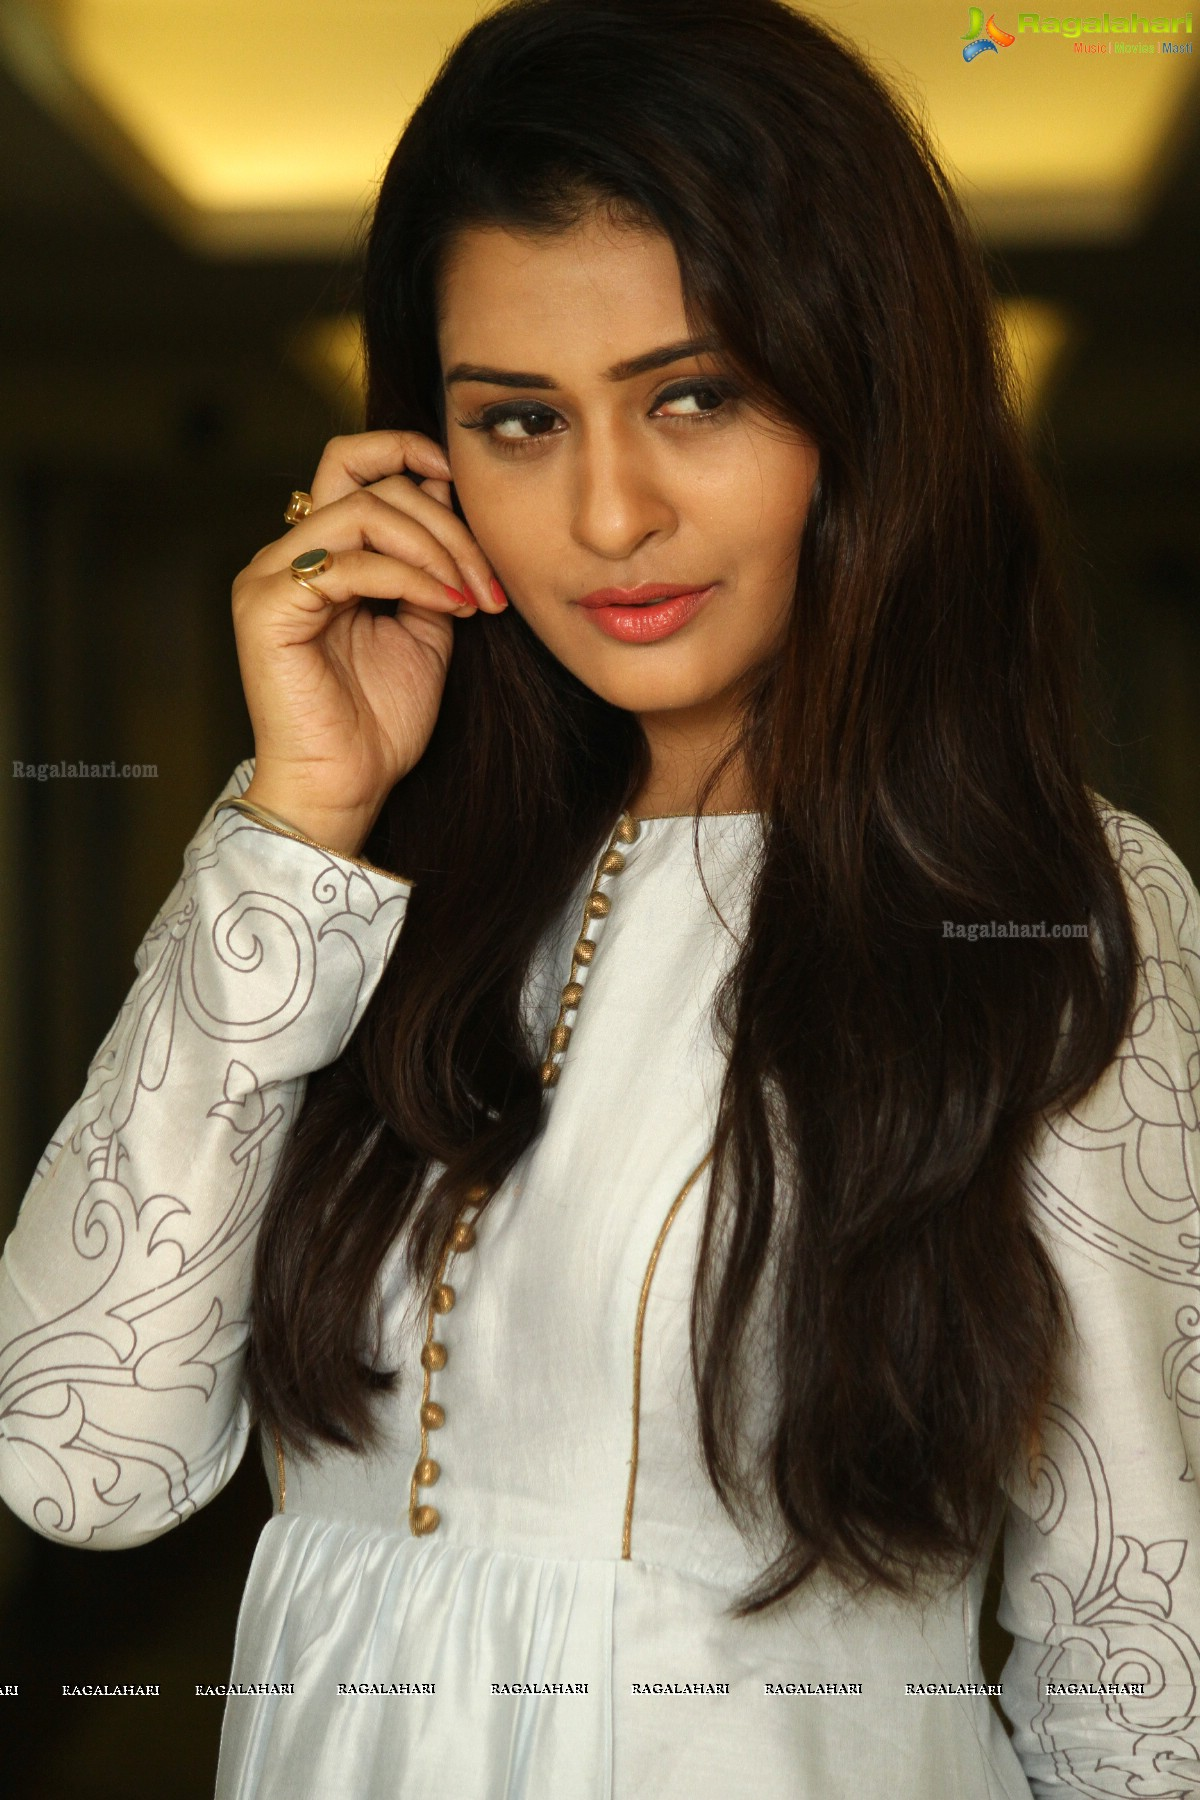 Payal Rajput Image 12 Tollywood Actress Imagesphotoshoot Wallpapers